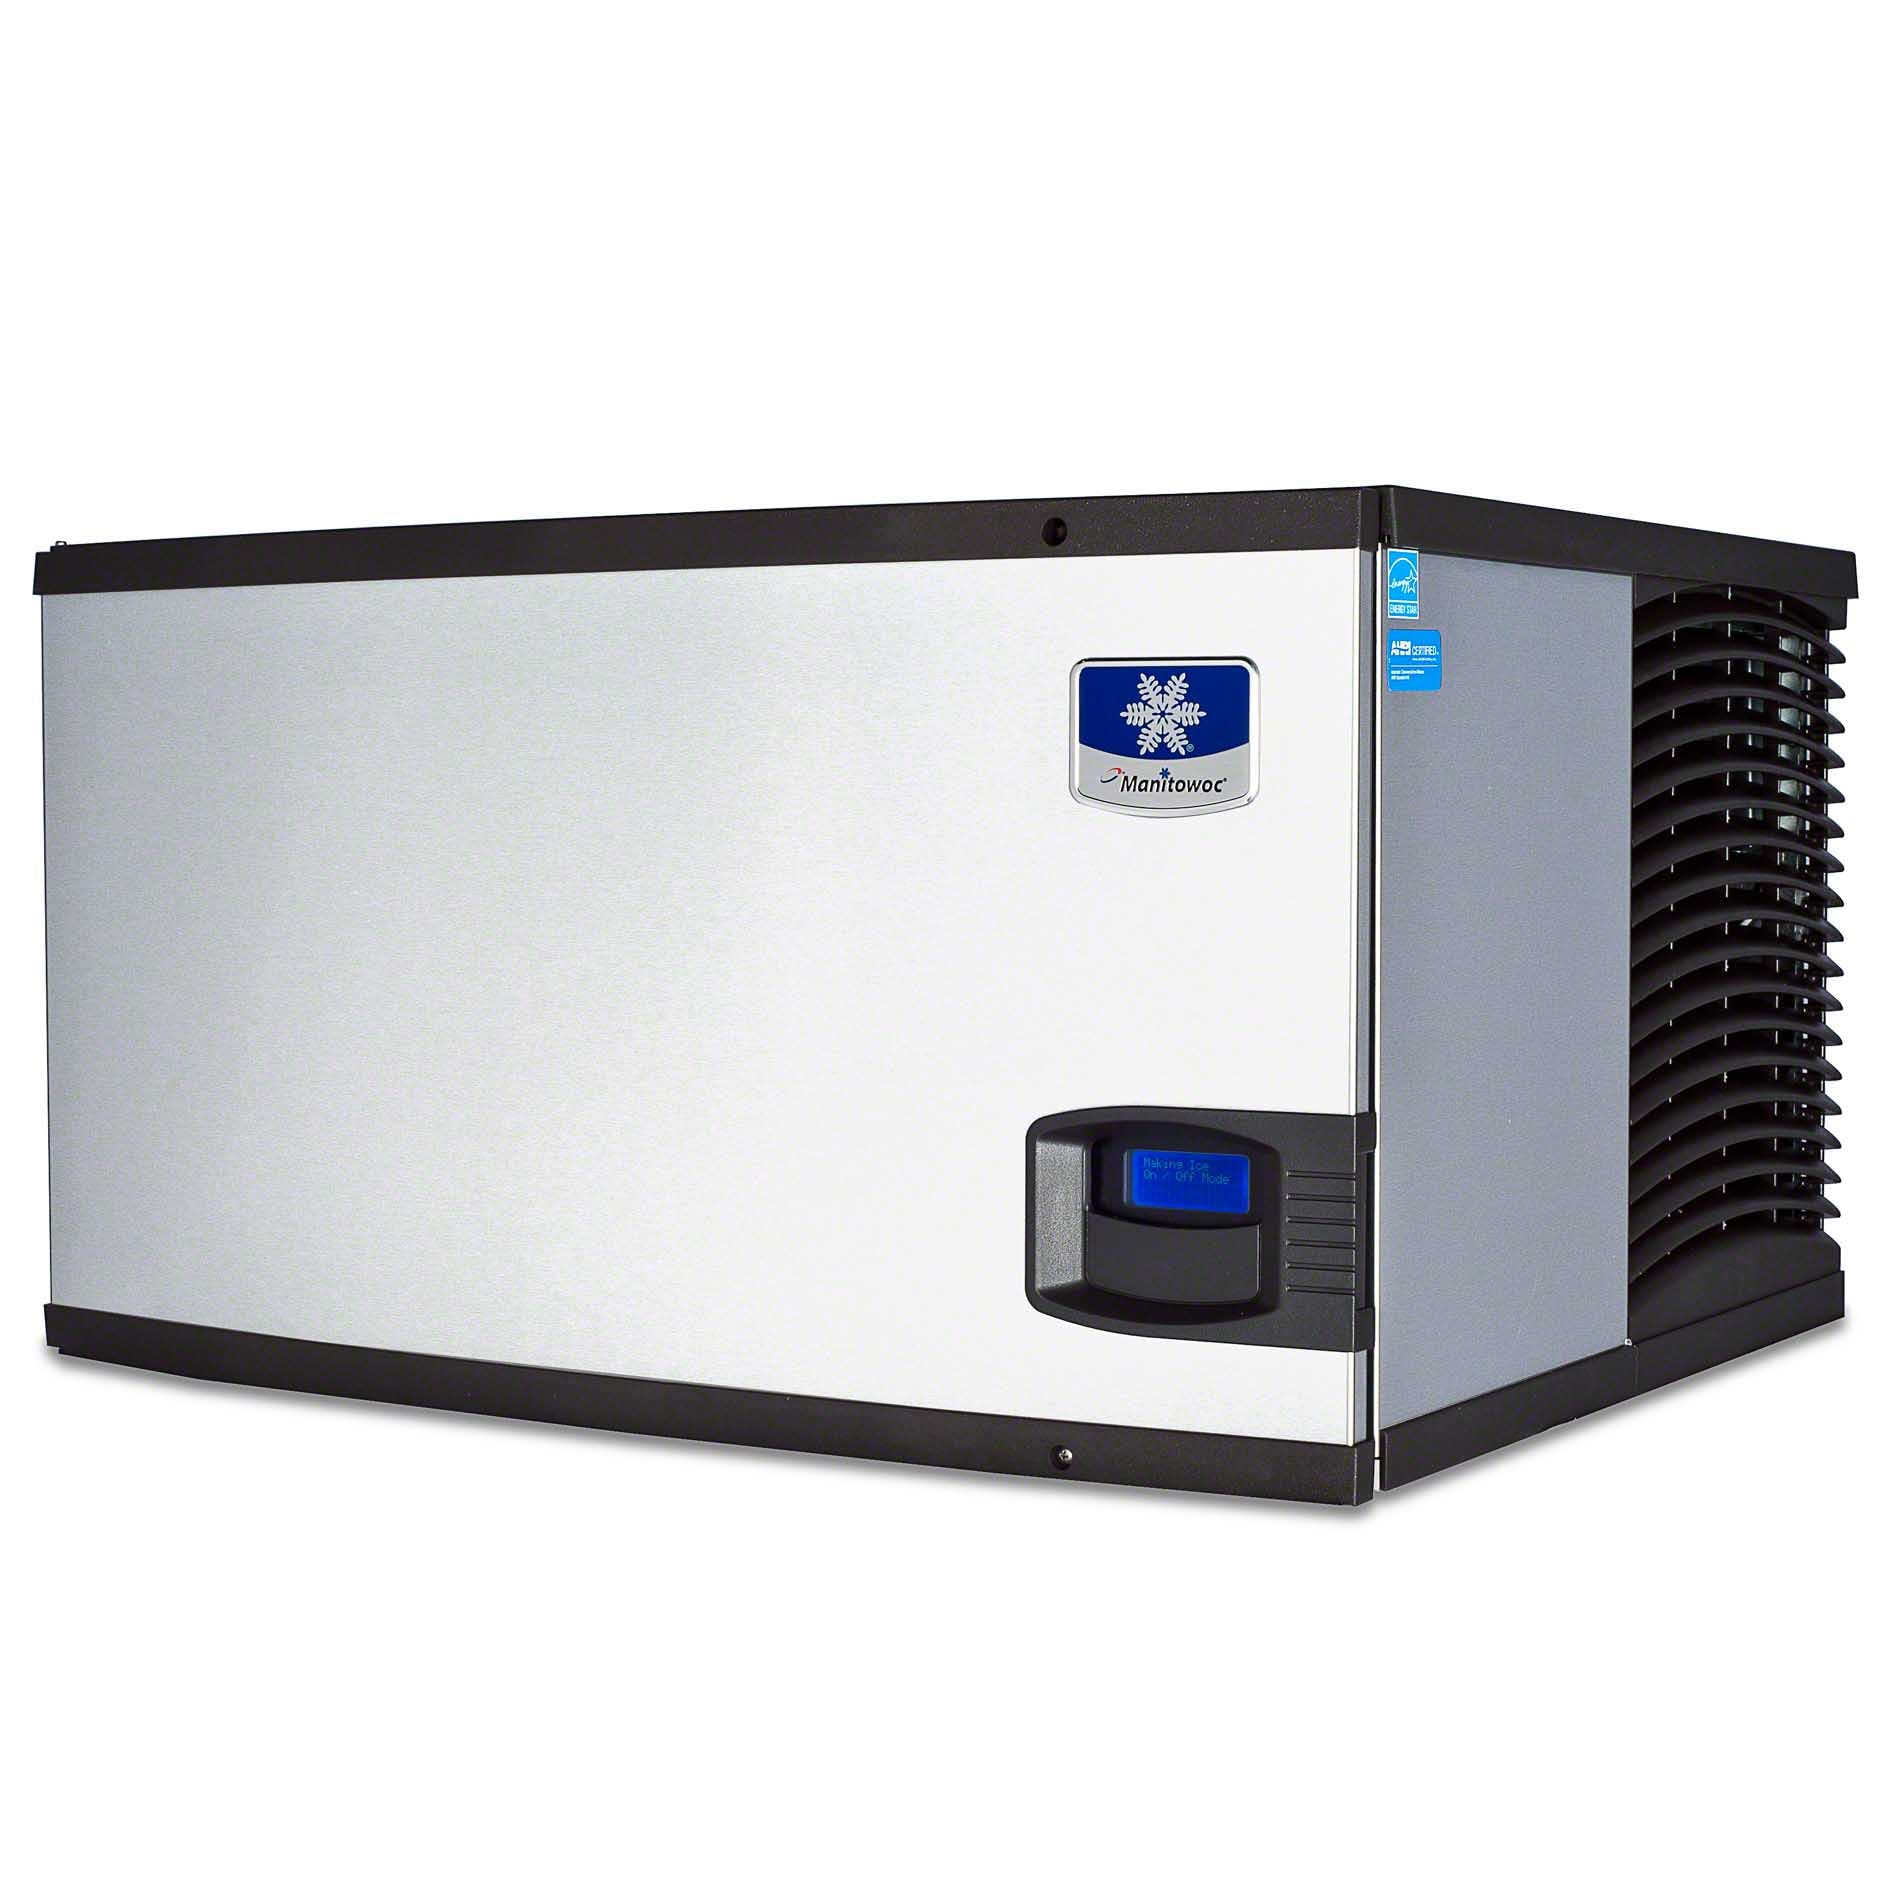 Manitowoc - IY-0304A 310 lb Half Size Cube Ice Machine - Indigo Series - sold by Food Service Warehouse